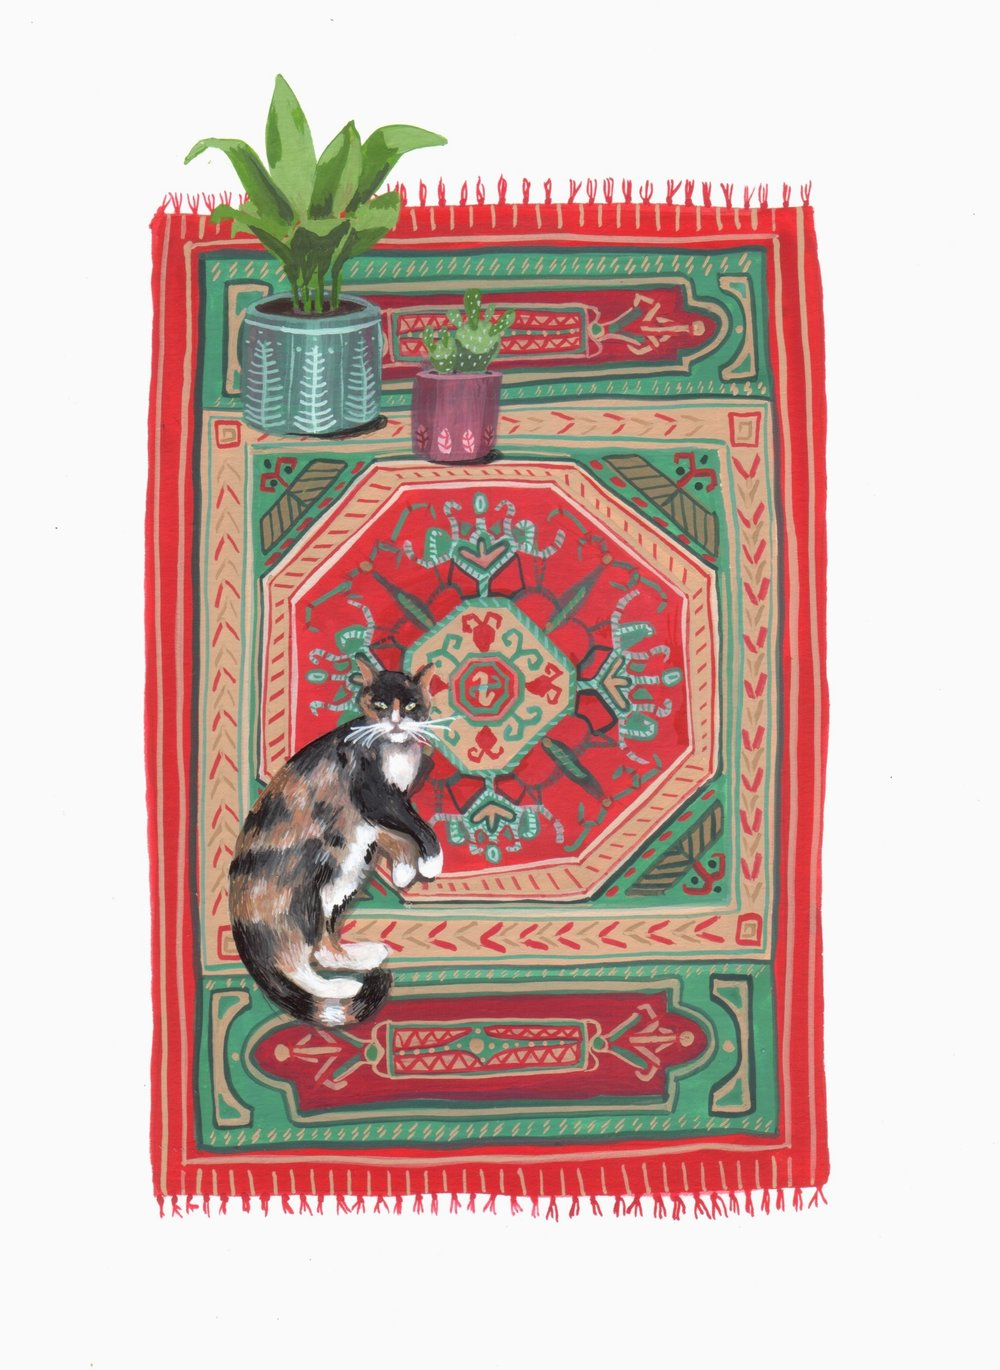 Cat on a Rug No. 2